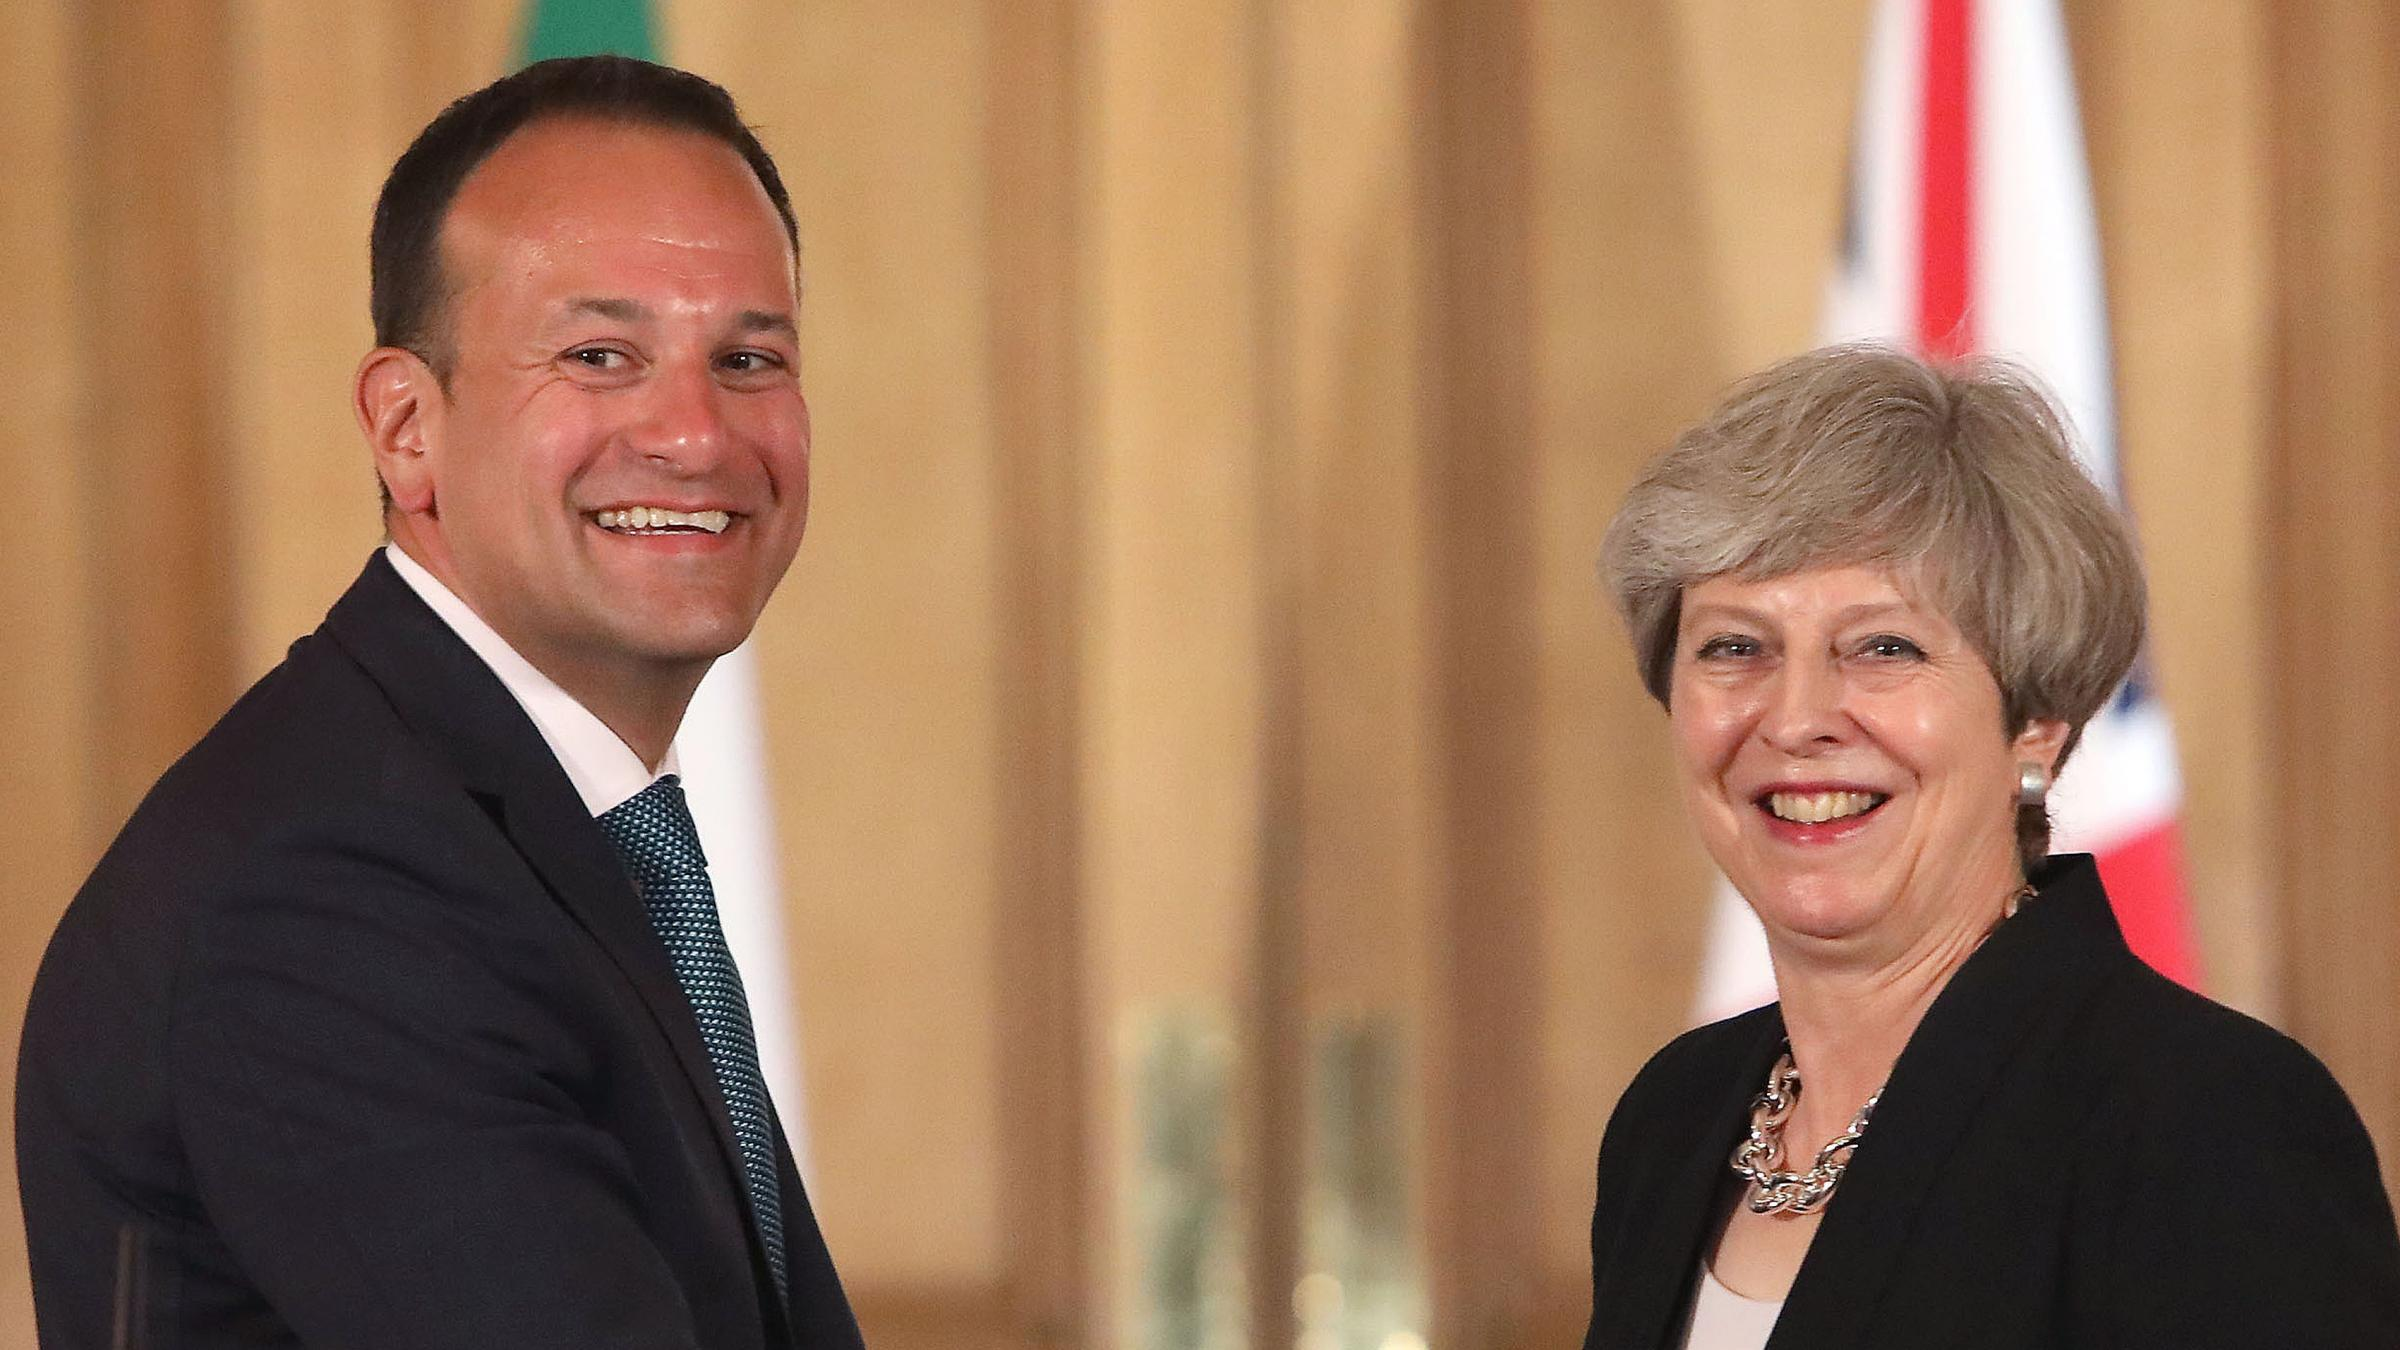 Irish Taoiseach 'reassured' over Tory-DUP deal